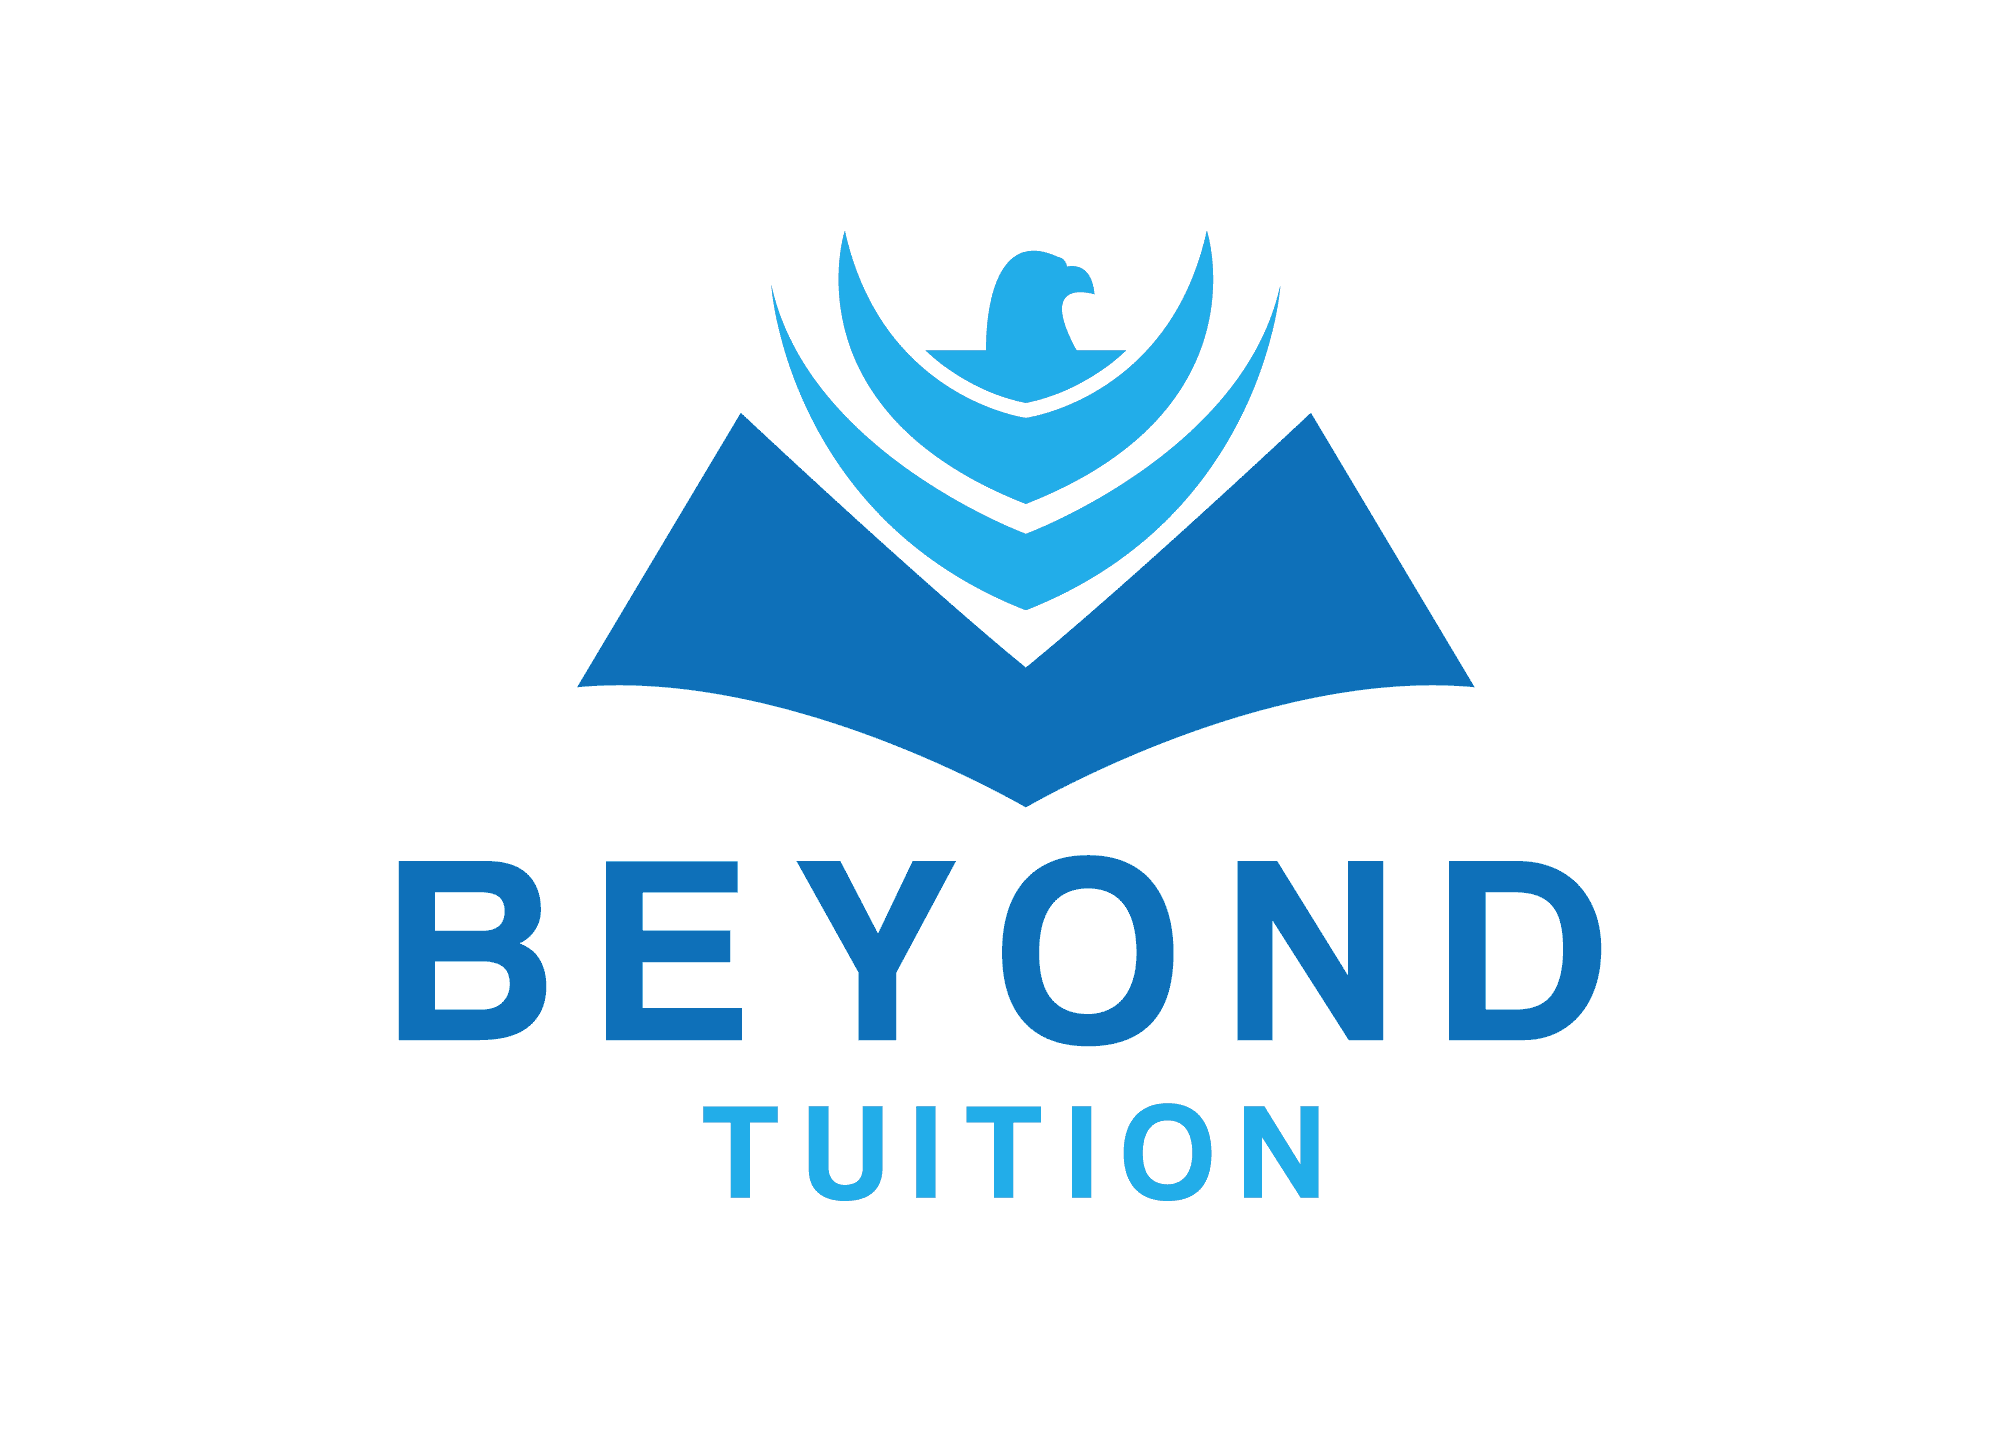 Beyond Tuition